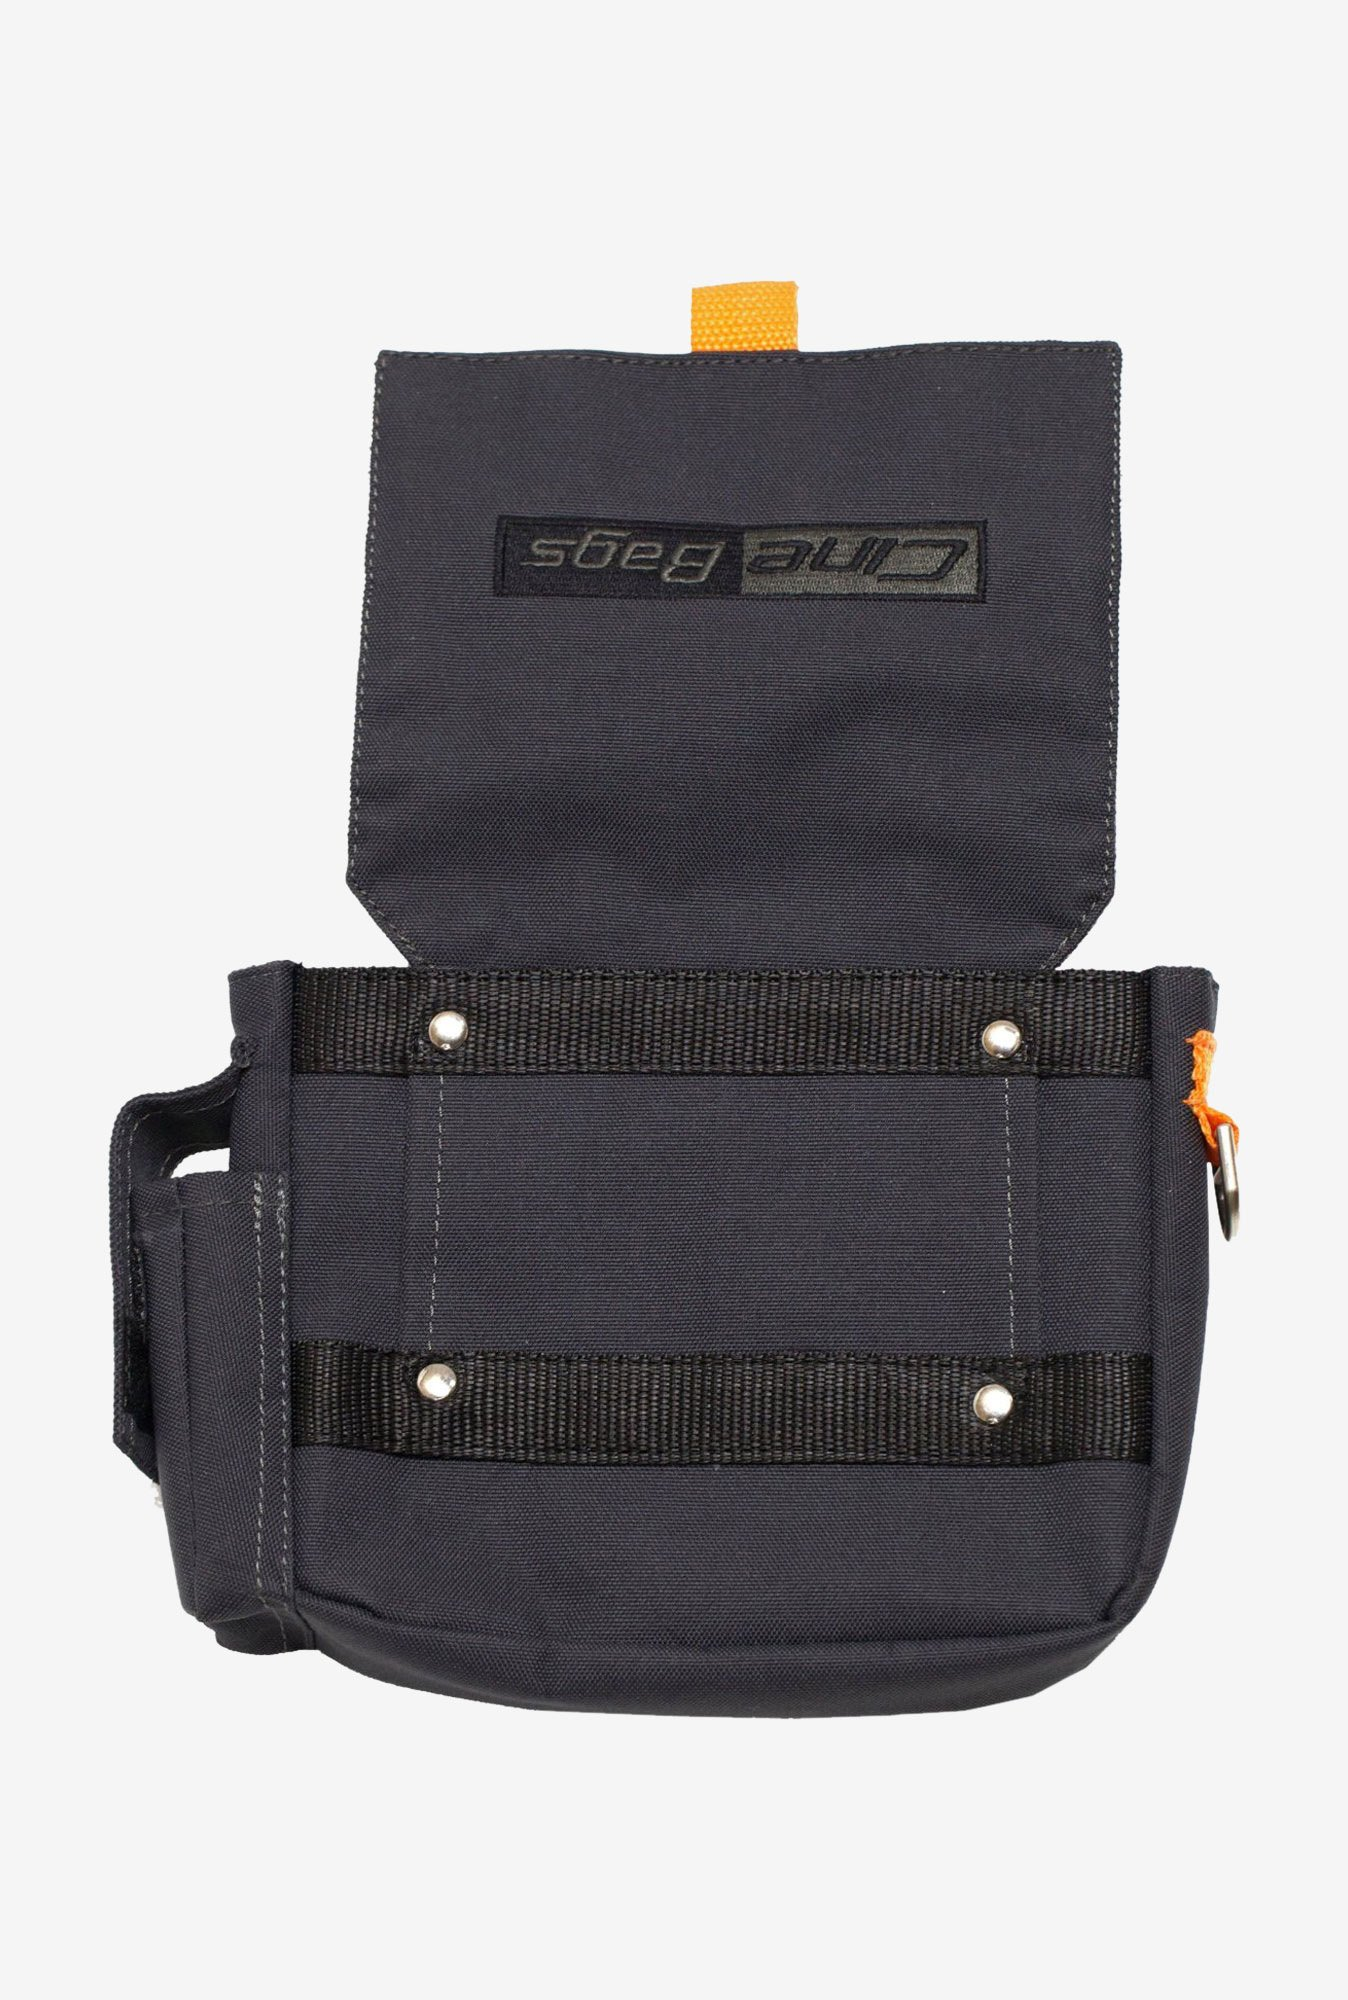 CineBags CB03 Pouch Grey